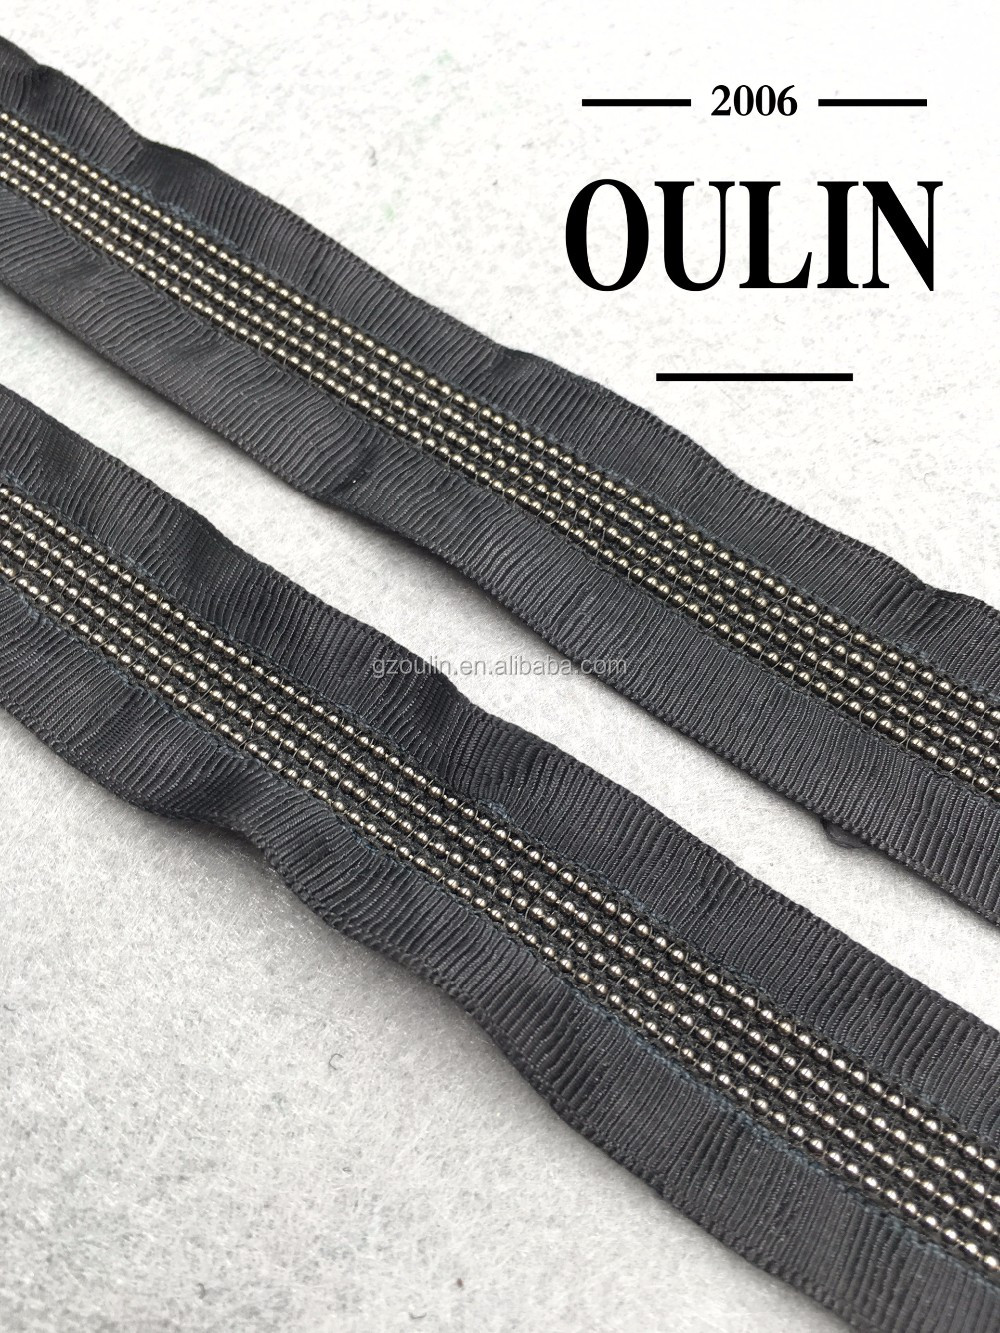 Polyester material tape ball chain lace trim copper chain lace trim black color trim for fashion clothes